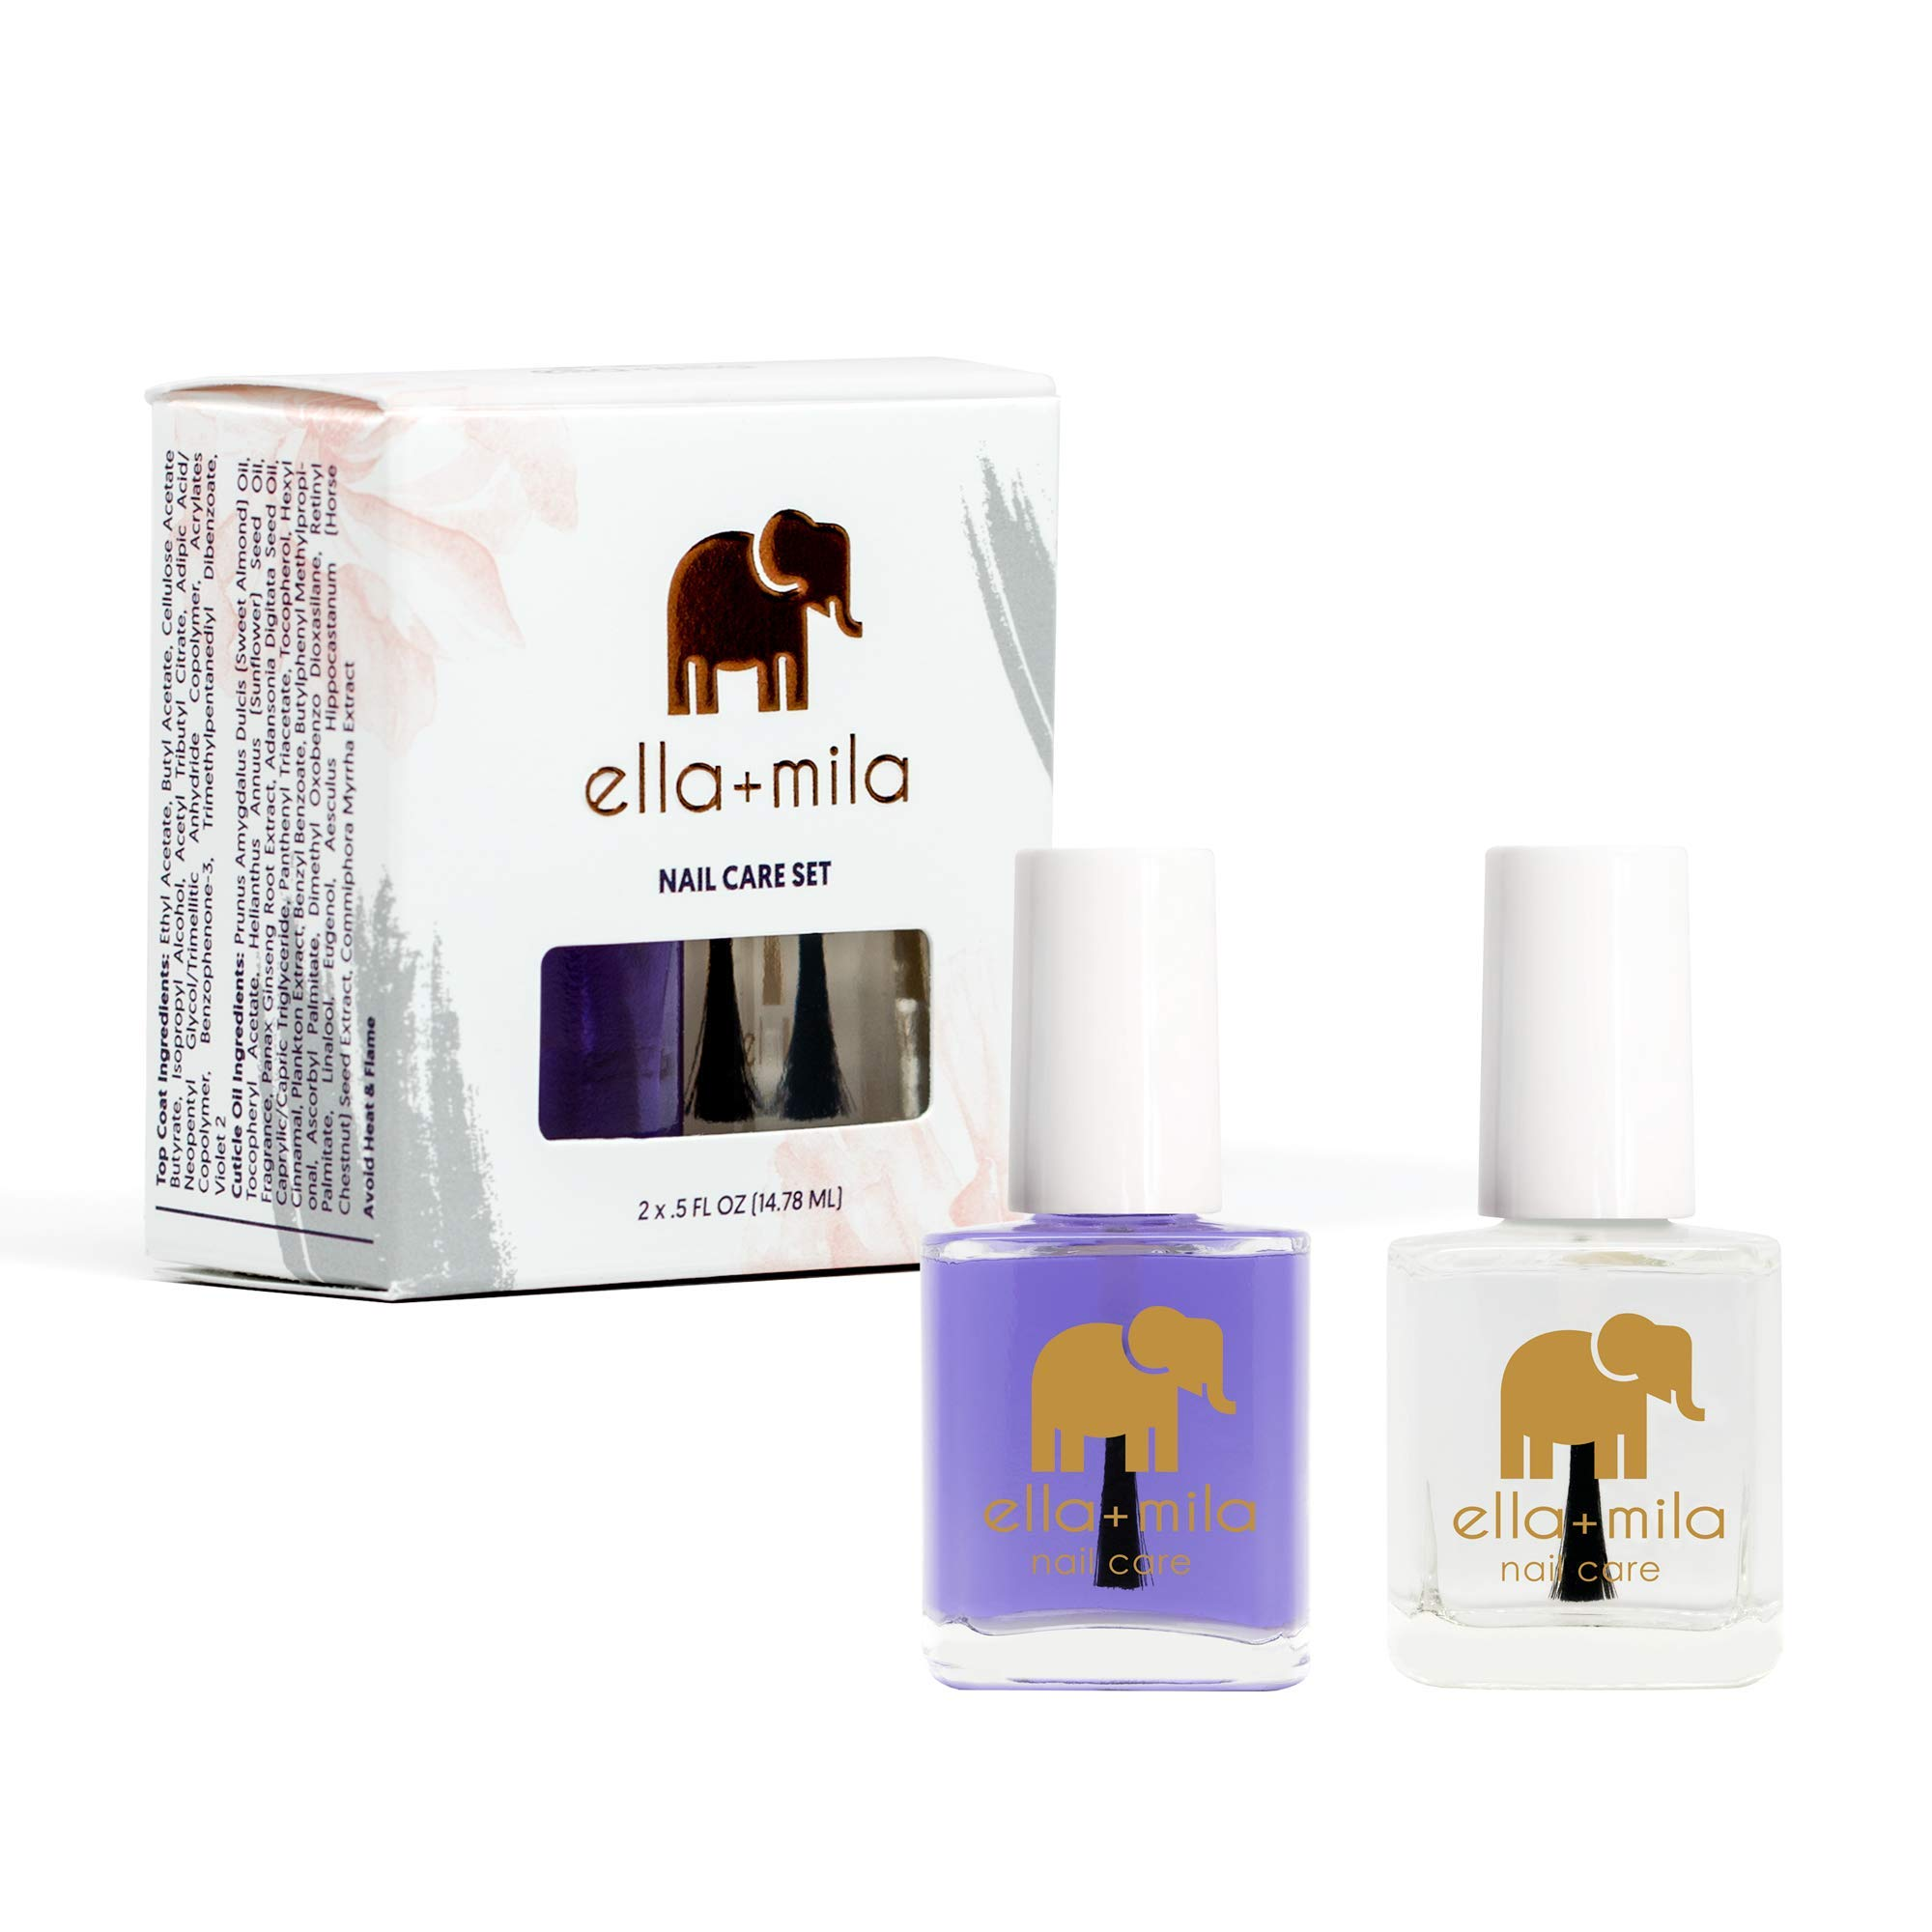 ella+mila Nail Care, Nail Care Duo - (2-Pack) by ella mila